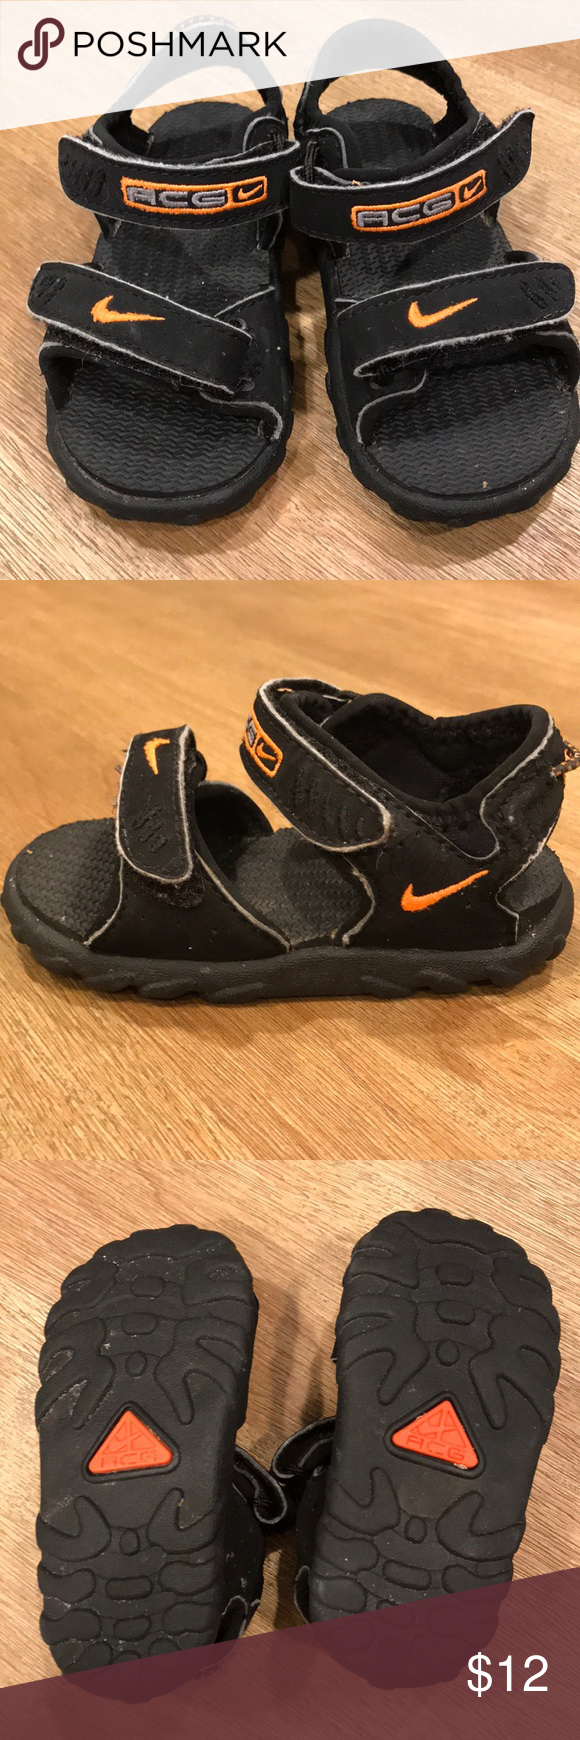 57471bb738ab2 Nike ACG Toddler Sandals    Size 5 Excellent condition black Nike ACG  little boys sandals. Adjustable straps at ankle and across bridge of foot  give plenty ...